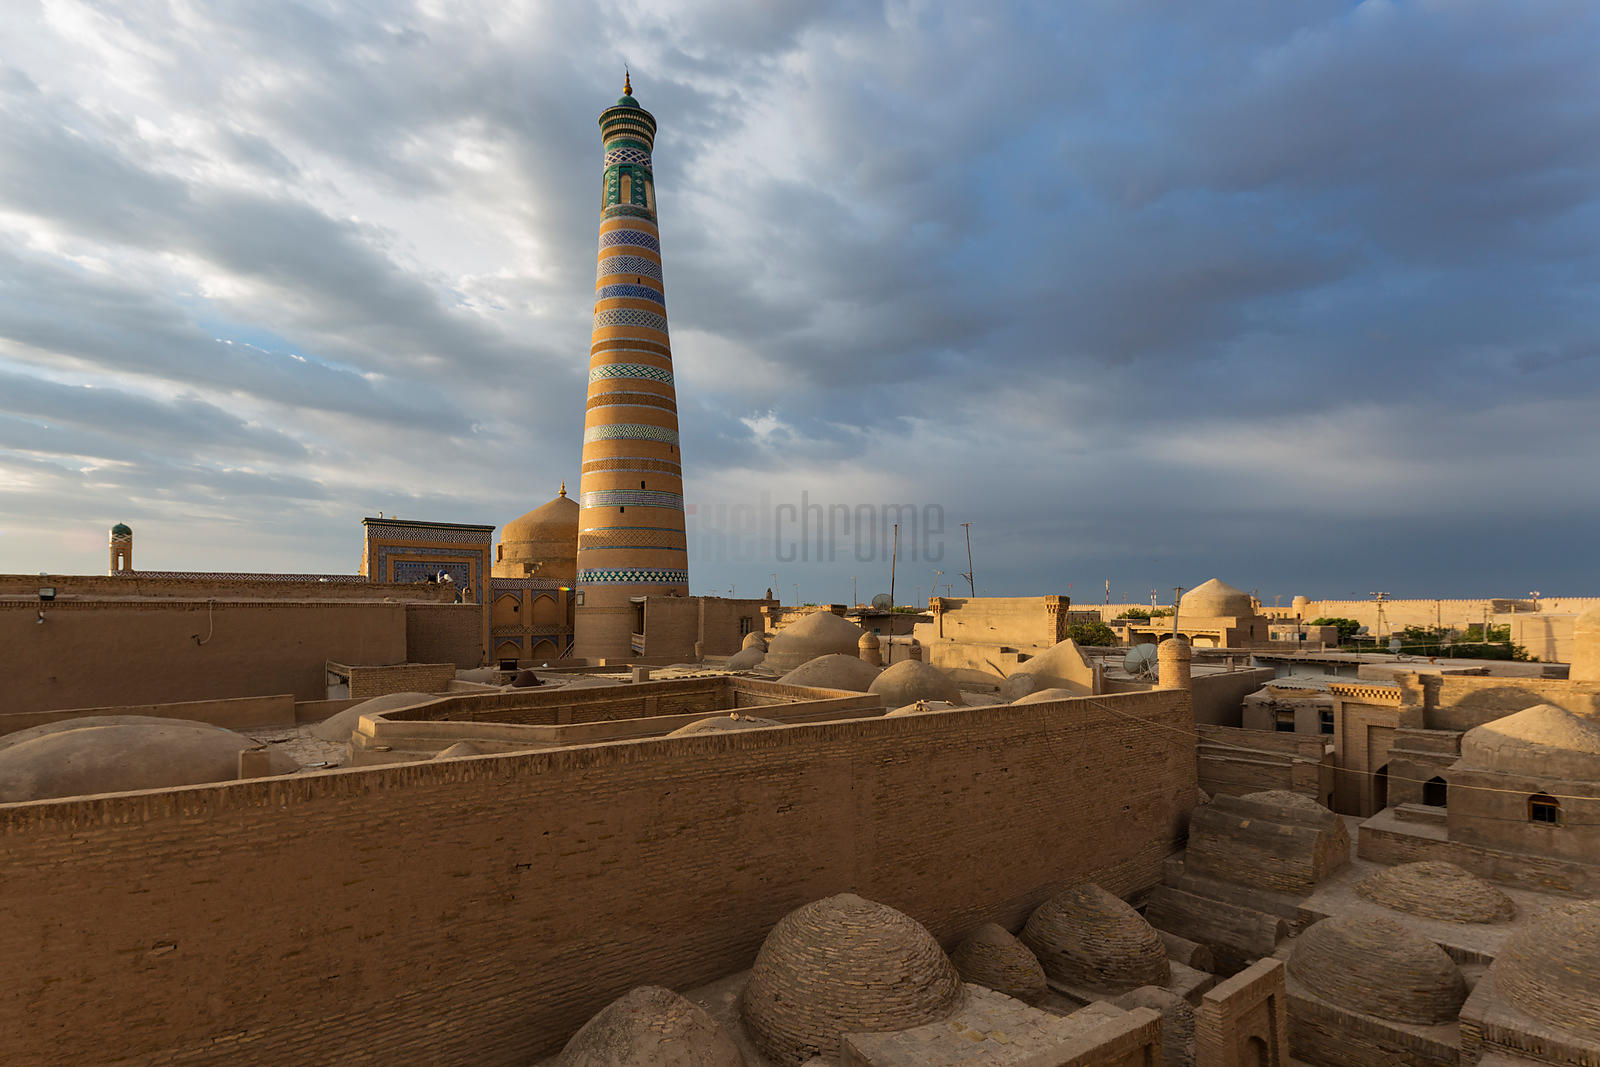 The Islam Khodja Minaret at Sunrise